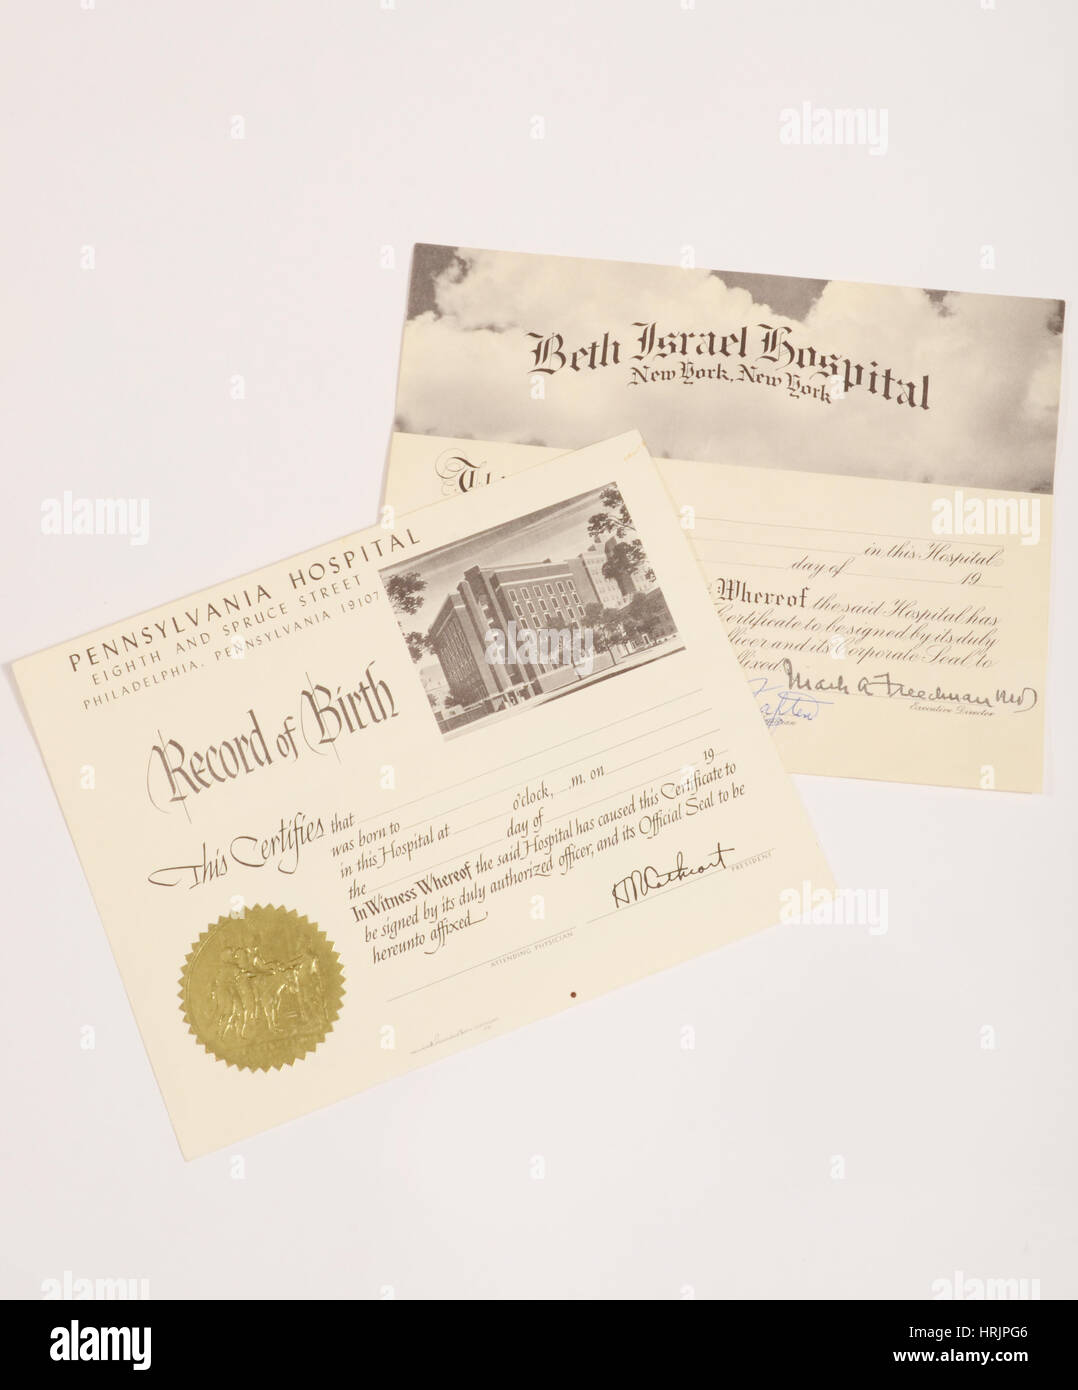 Birth Certificates Stock Photo 135022502 Alamy